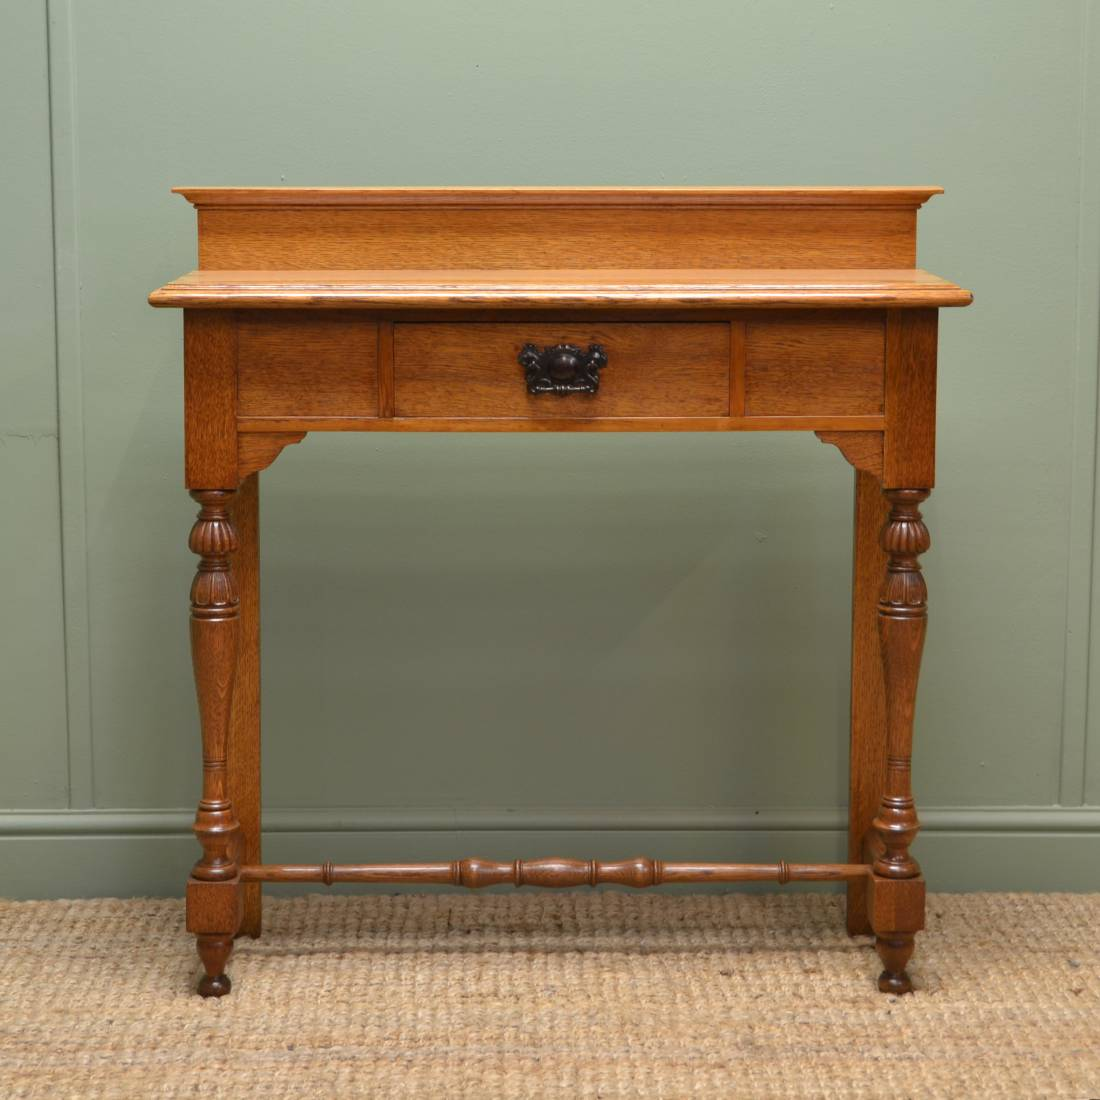 Foyer Table Uk : Superb quality victorian golden oak antique hall table